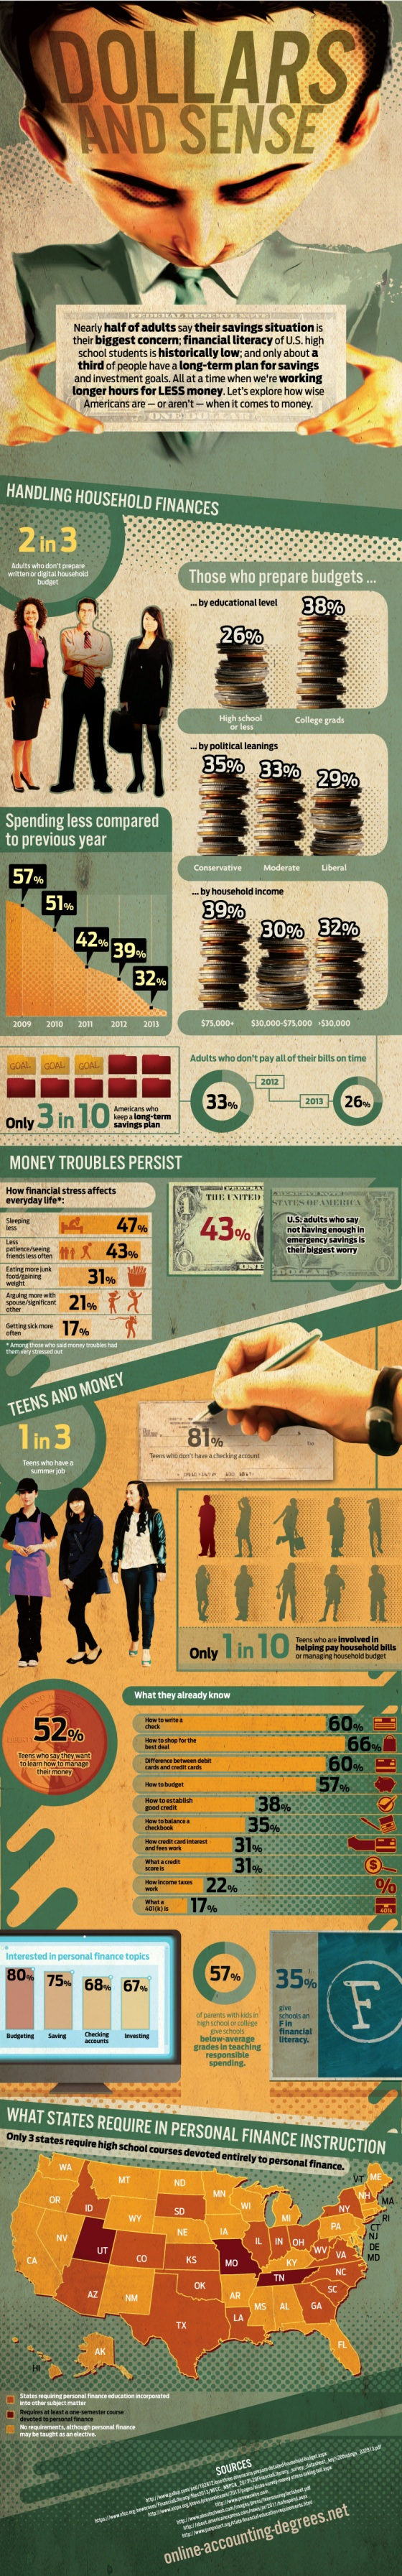 Infographic:Dollars and Sense